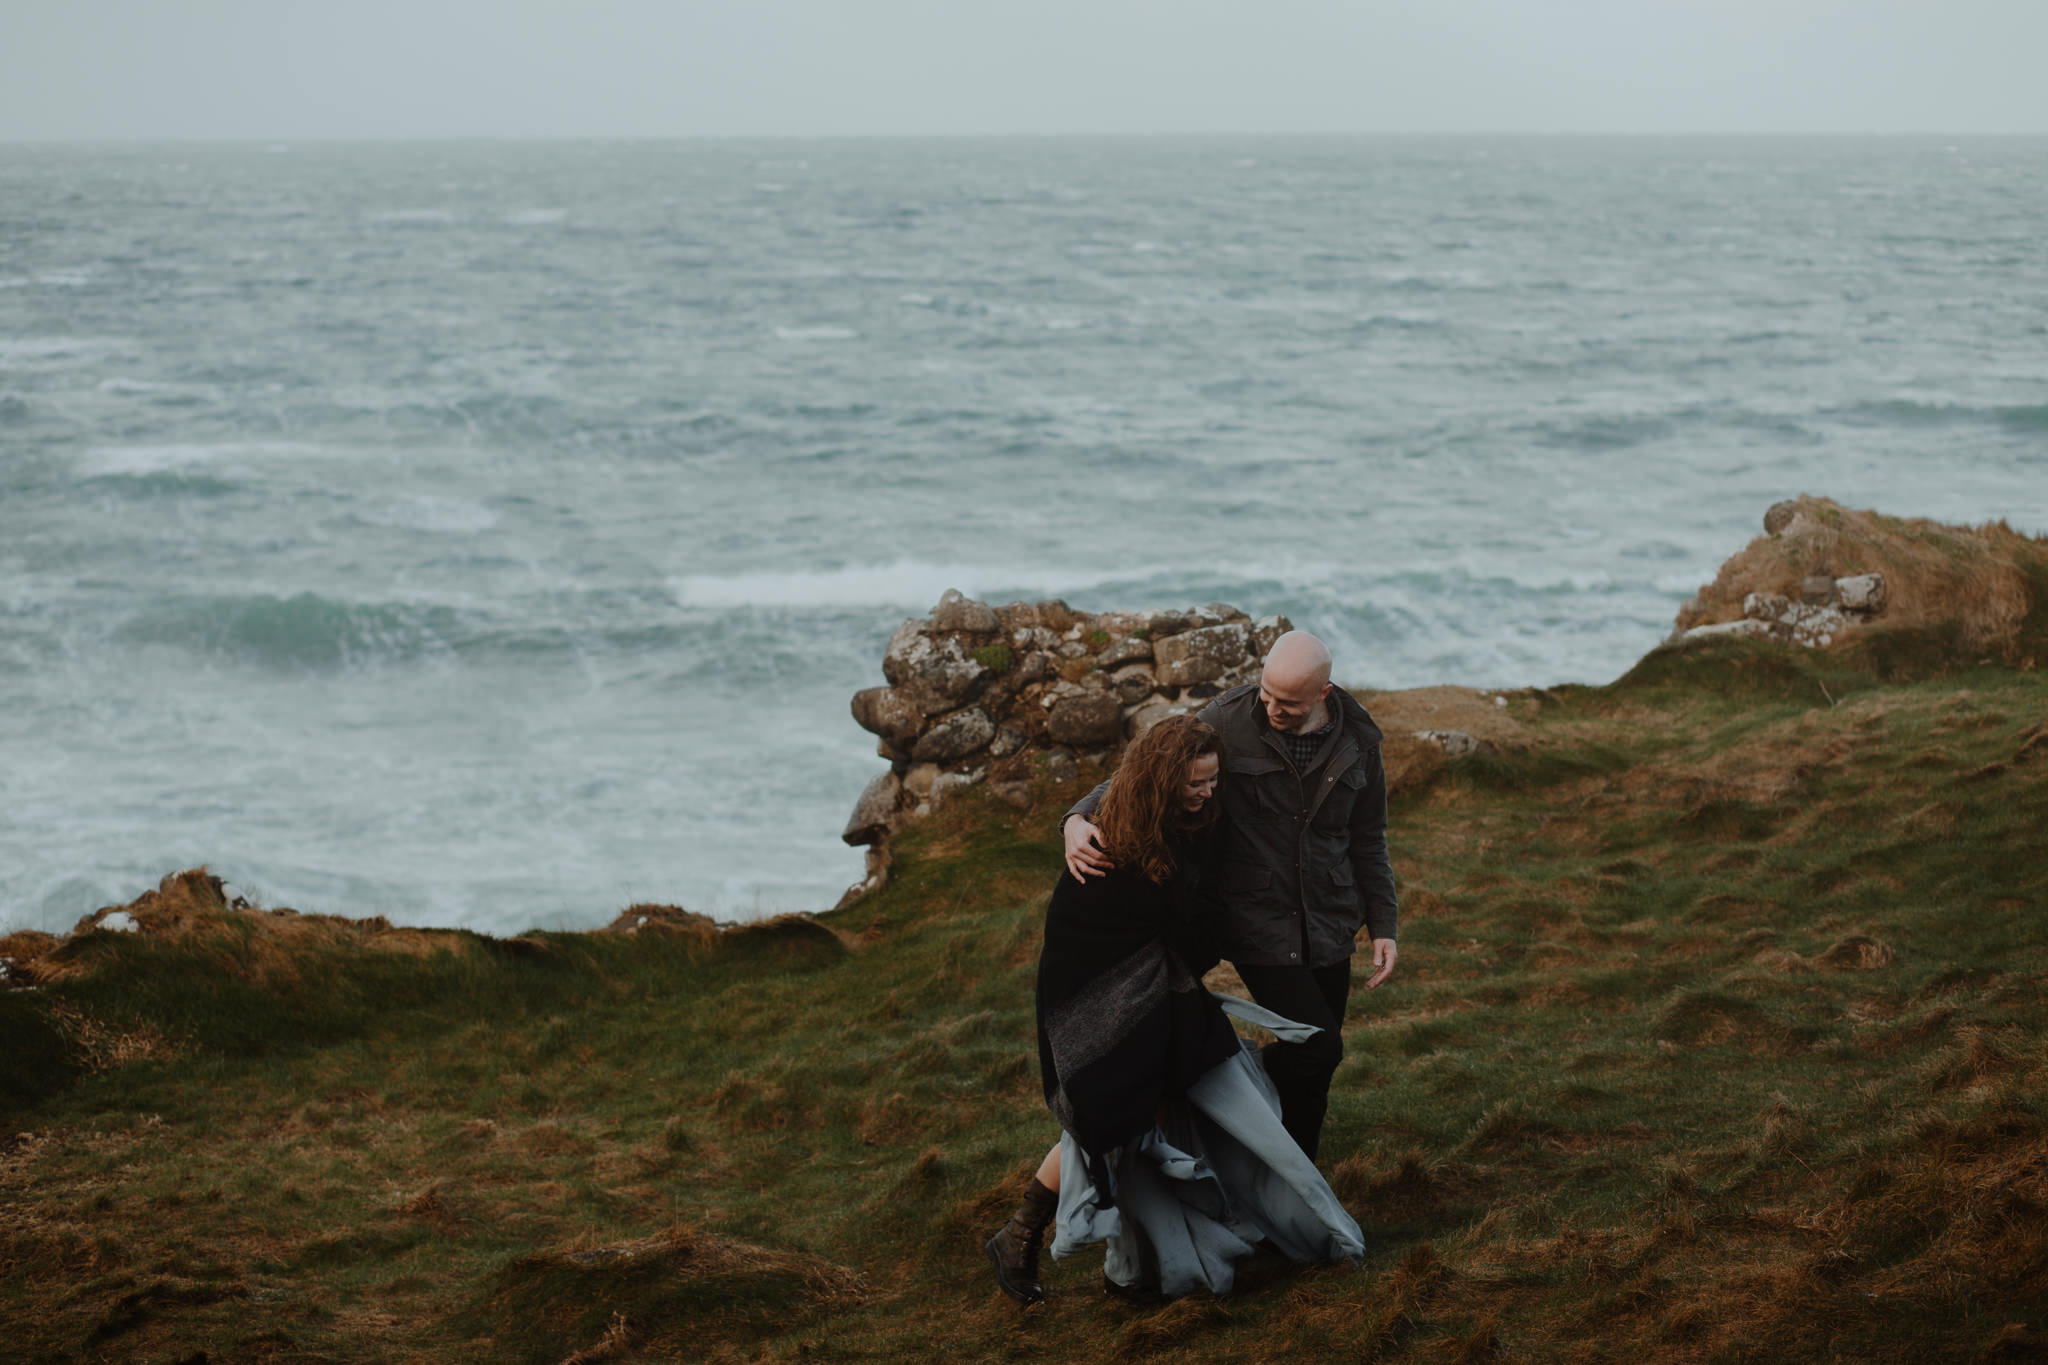 couples adventure elopement photographer northern ireland kinbane castle